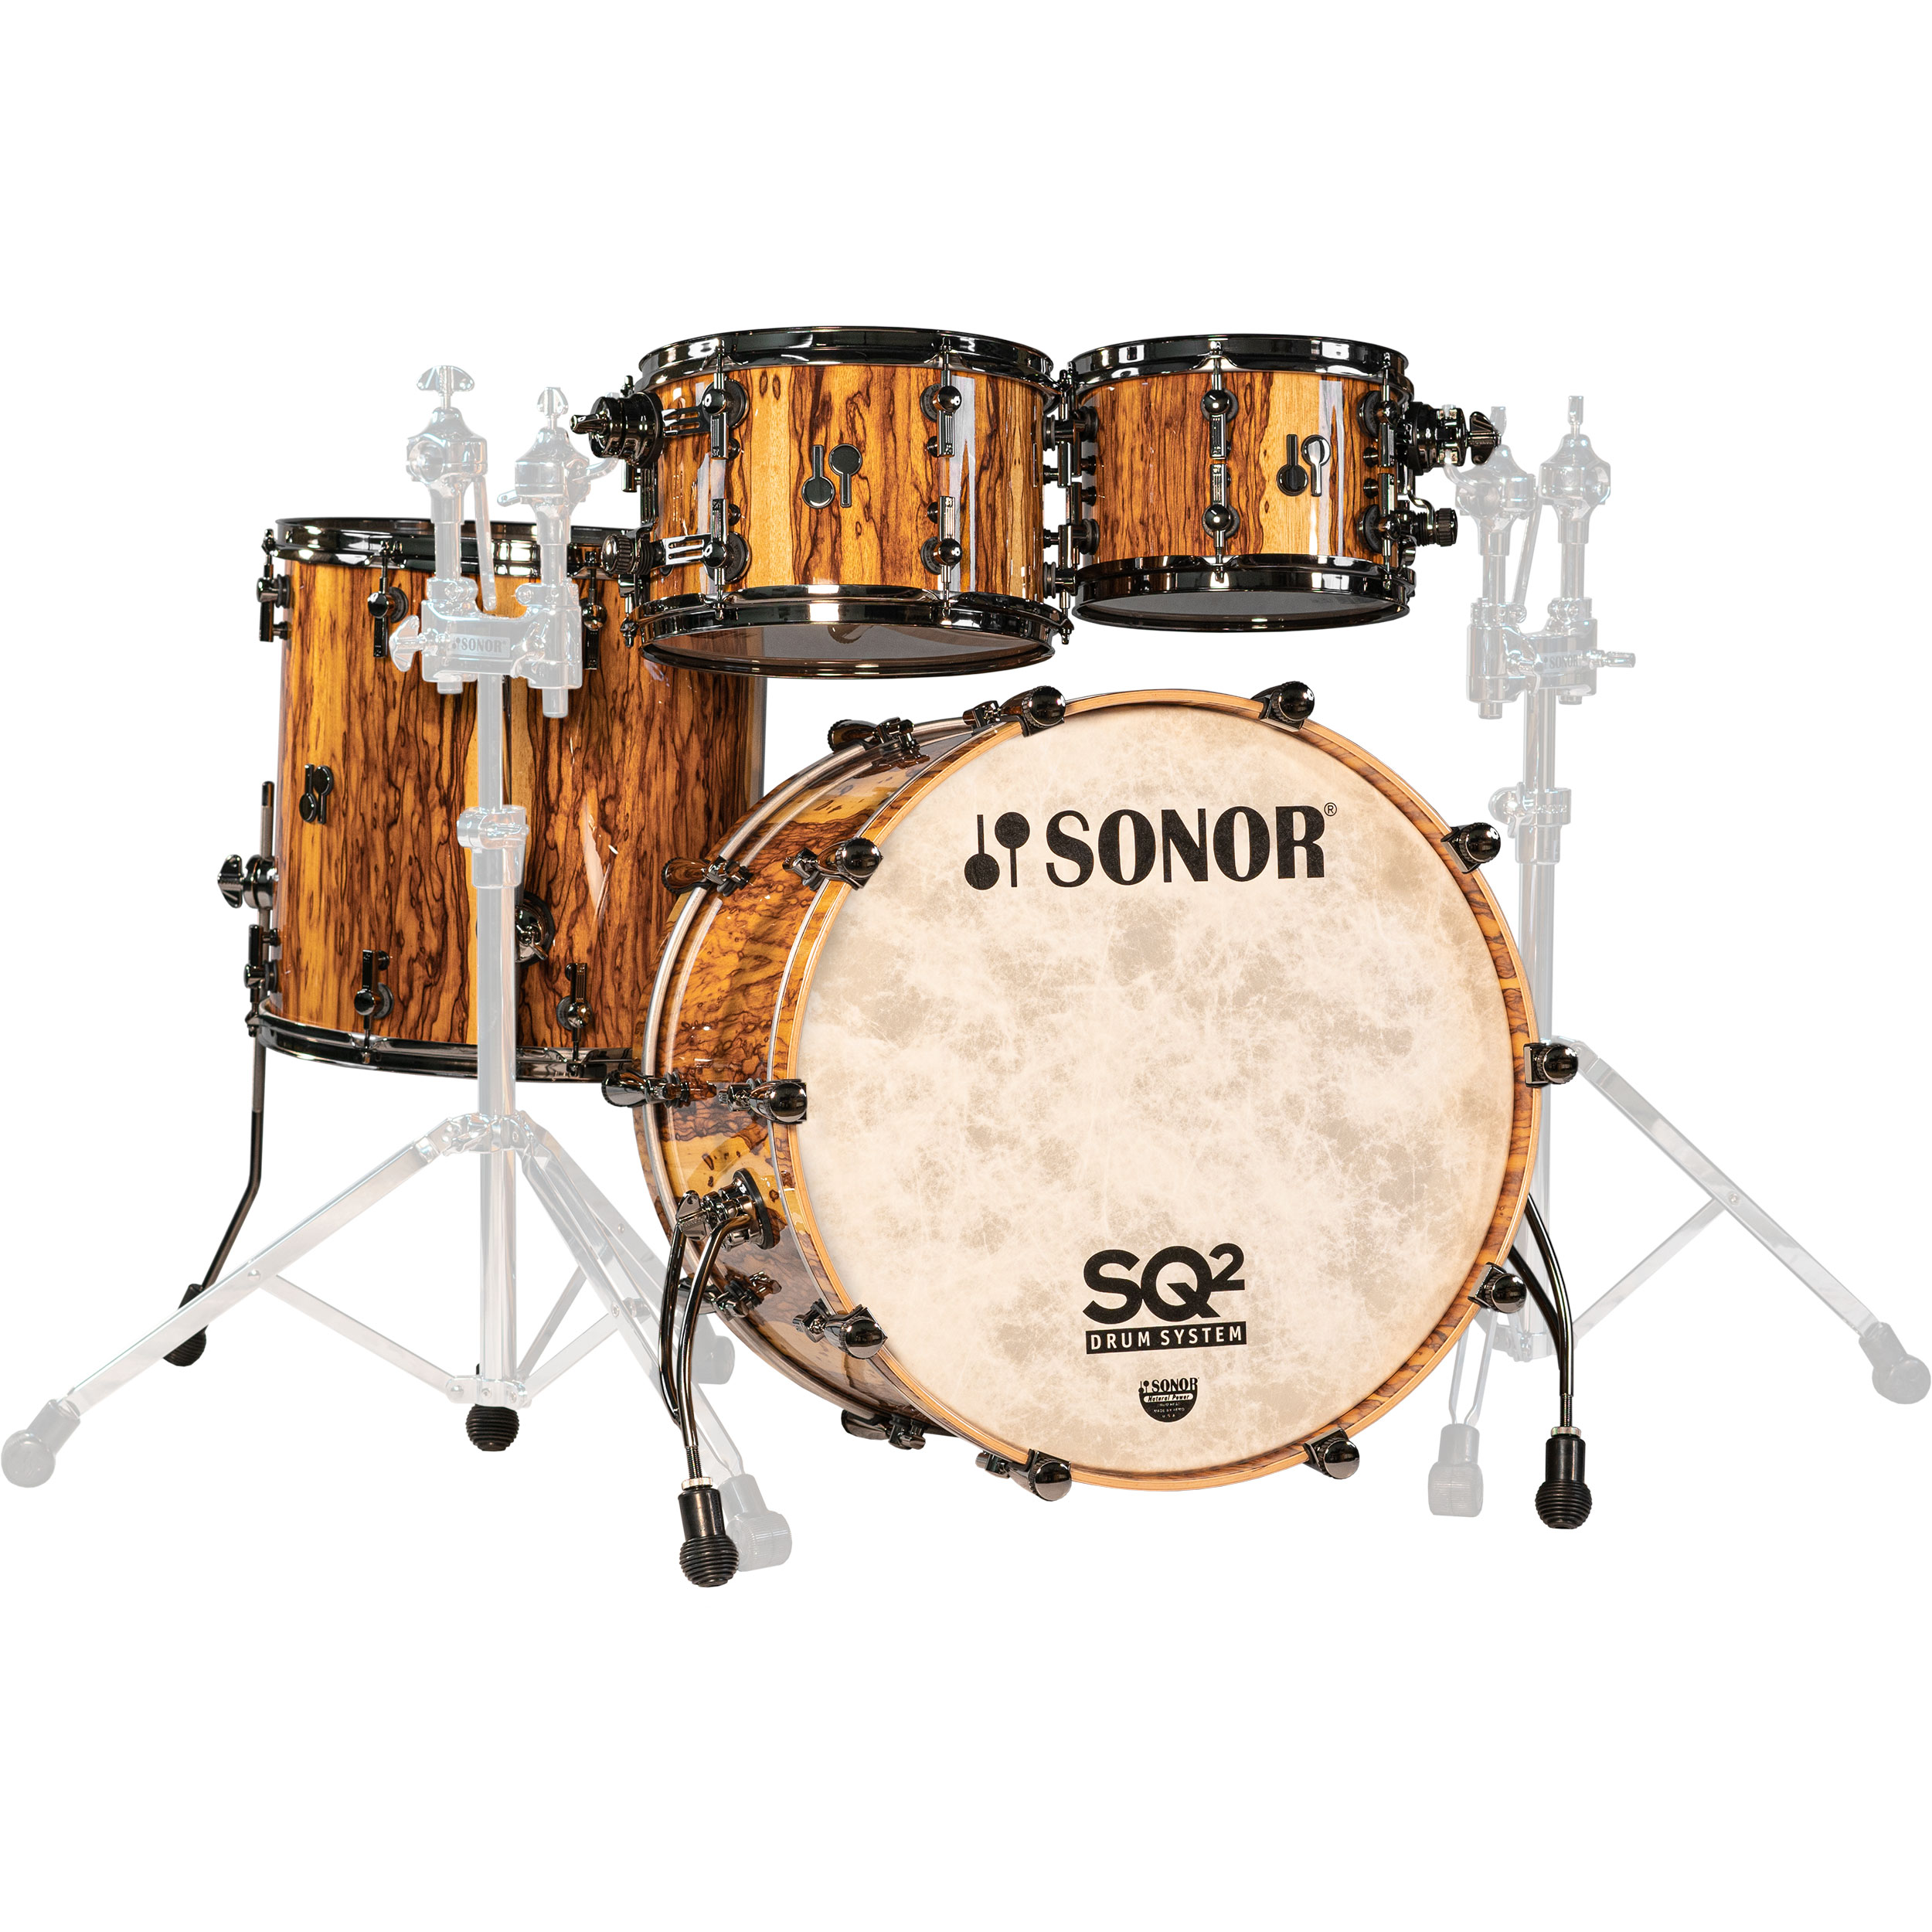 """Sonor SQ2 Custom Vintage Maple 4-Piece Drum Set Shell Pack (22"""" Bass, 10/12/16"""" Toms) in African Marble with Black Chrome Hardware"""